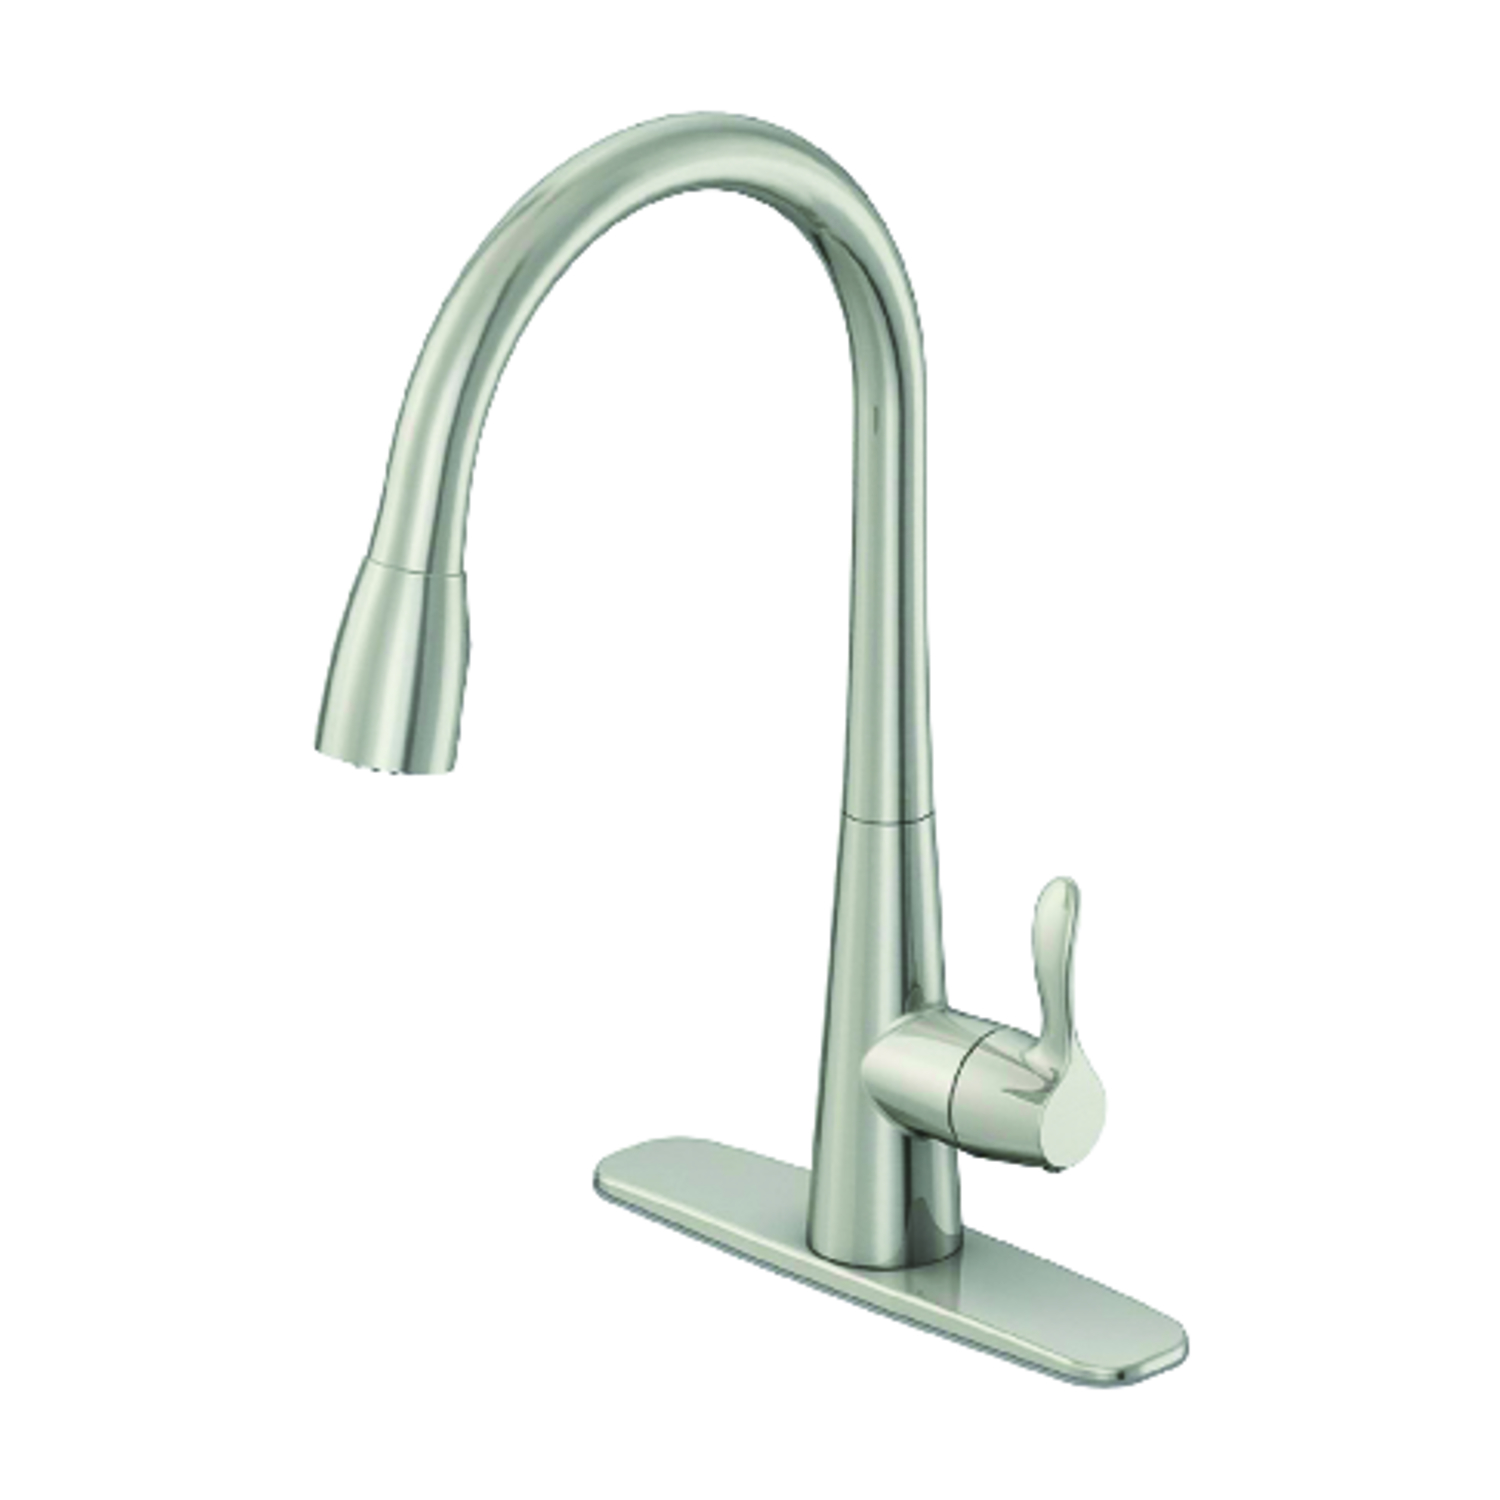 OakBrook Vela Pull-Down One Handle Brushed Nickel Kitchen Faucet ...